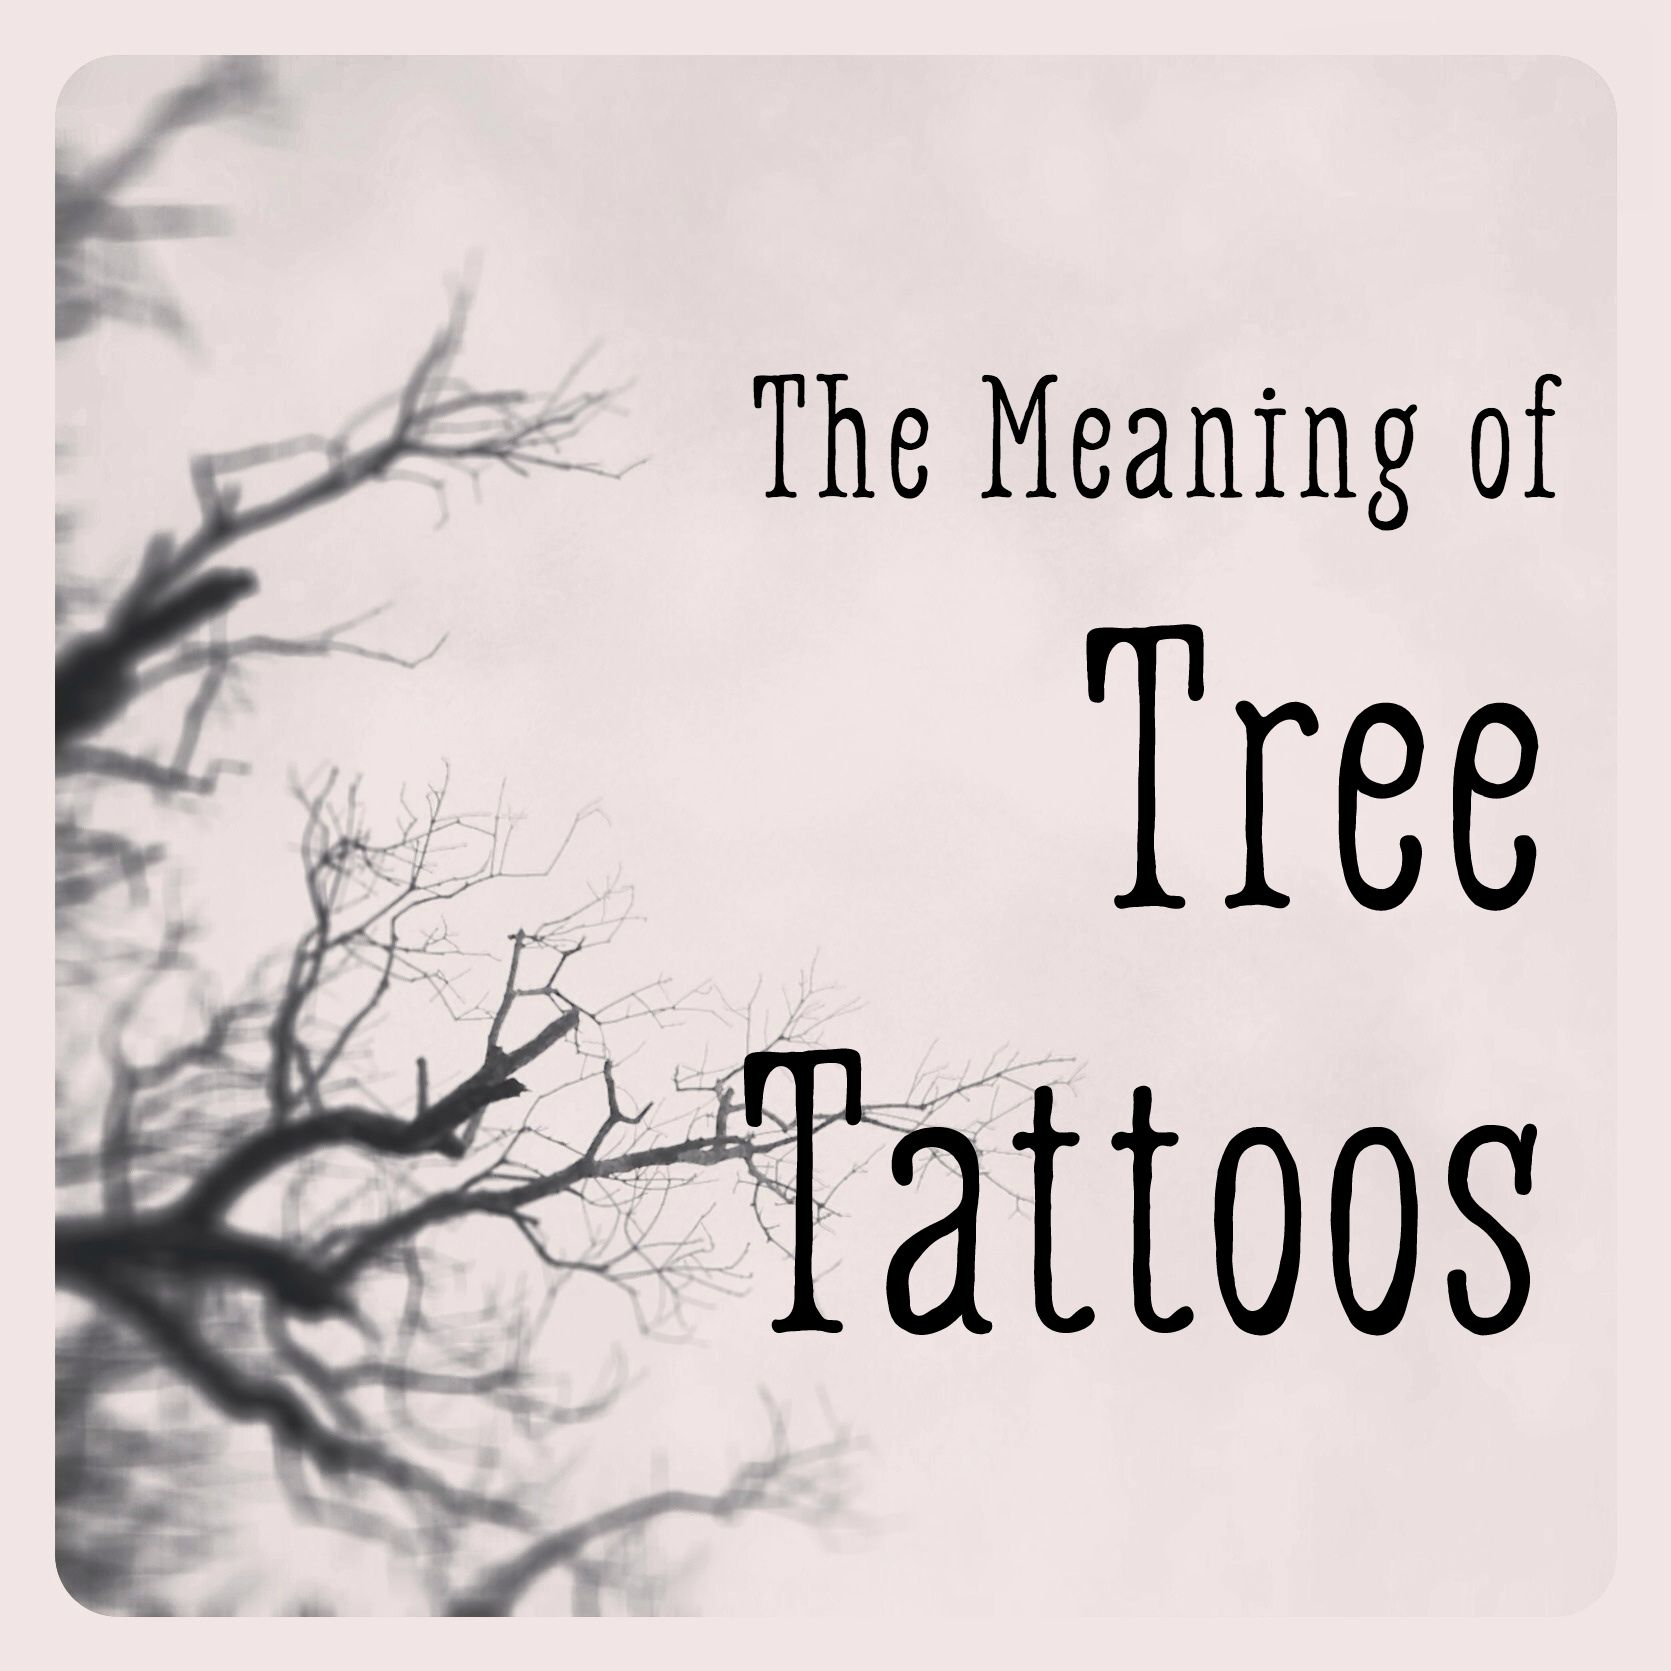 man of letters meaning best 25 tree of meaning ideas on tree of 23567 | 33a0cba0bdec61a3f7f4d8ba503cd202